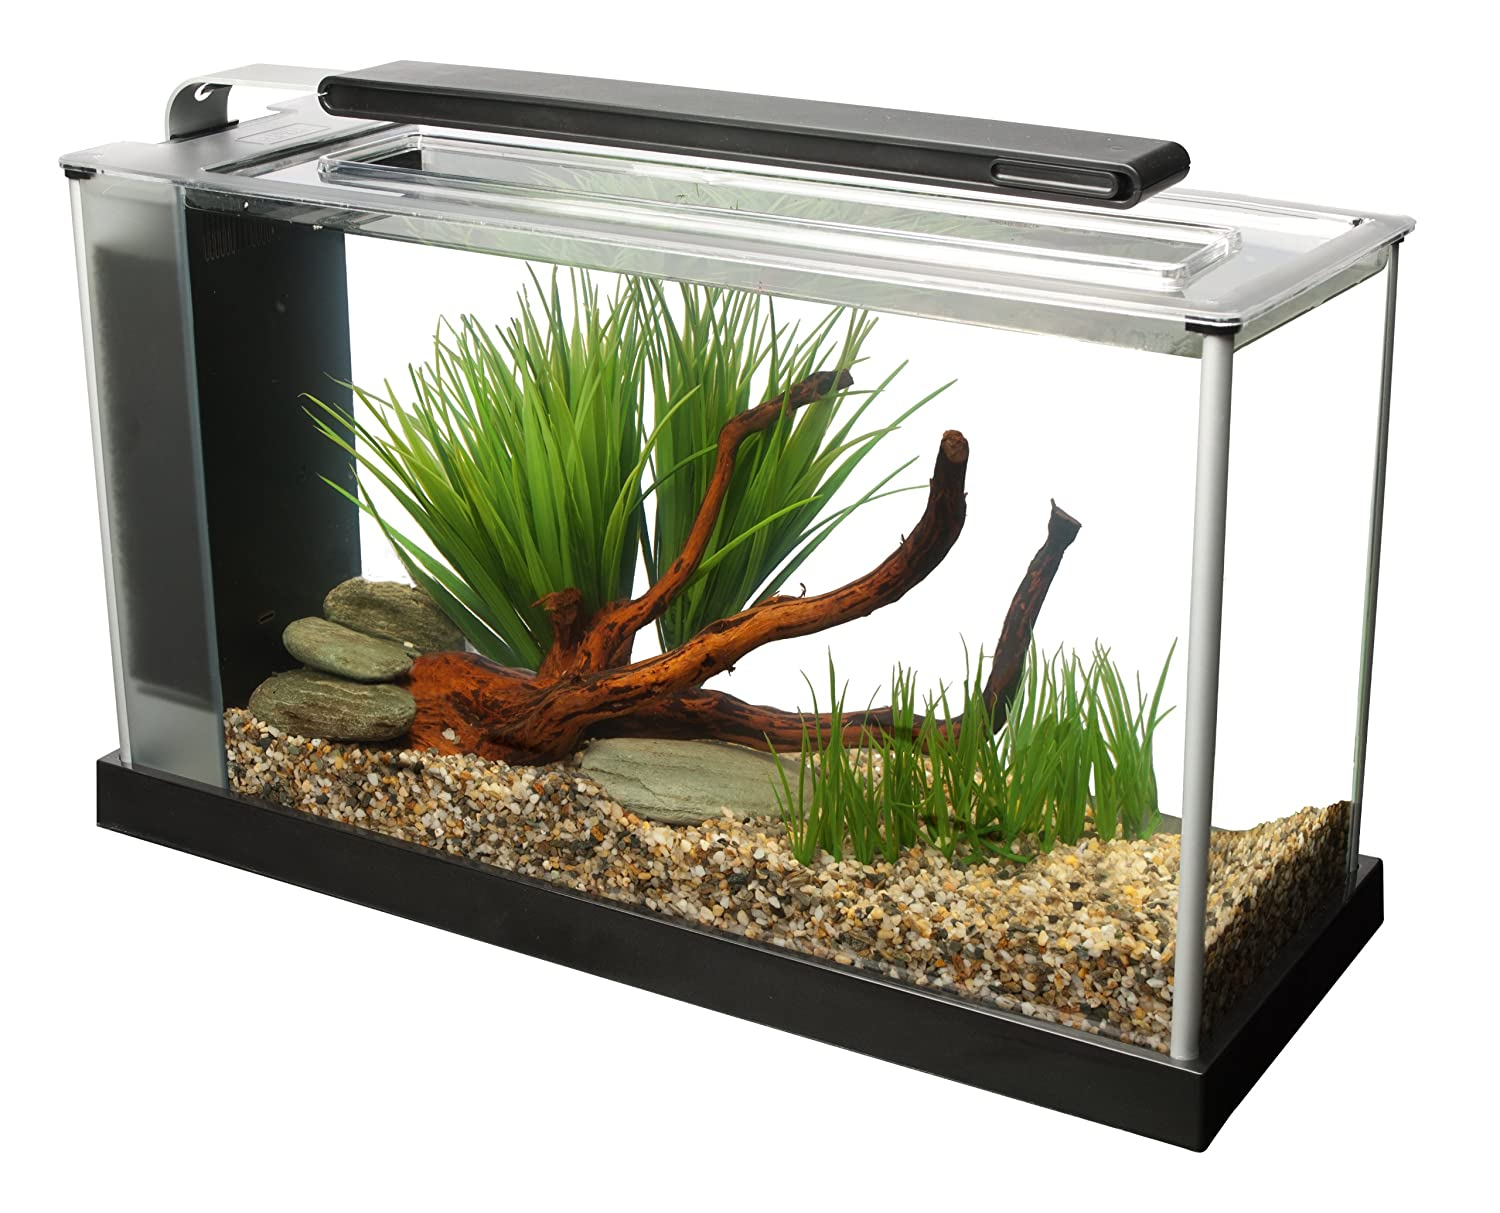 Fish aquarium for sale in lahore - Amazon Com Fluval Spec V Aquarium Kit 5 Gallon Black Aquarium Starter Kits Pet Supplies